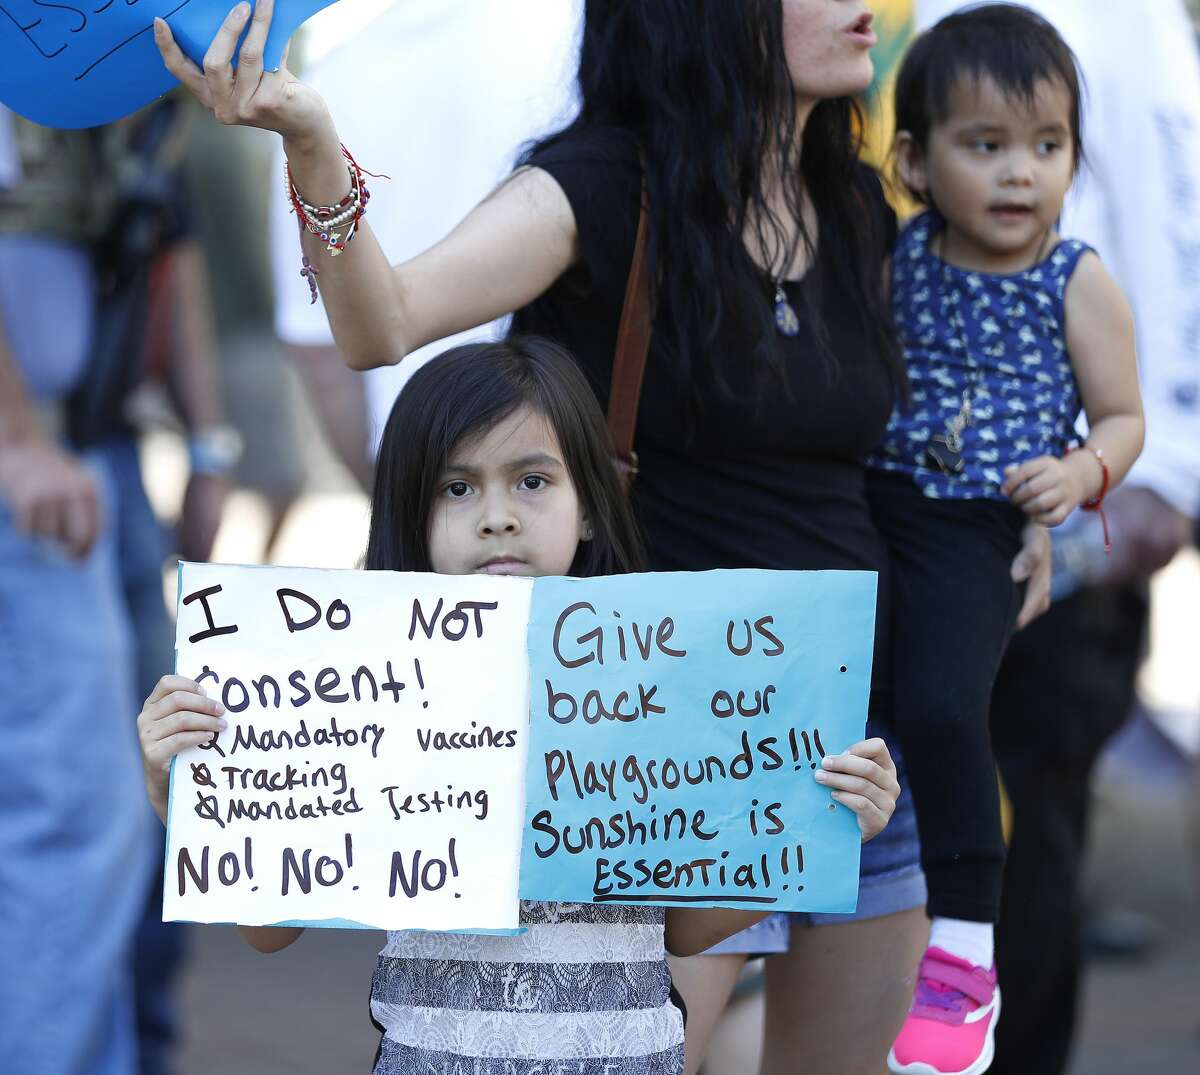 A little girl holds signs against mandatory vaccines and another saying